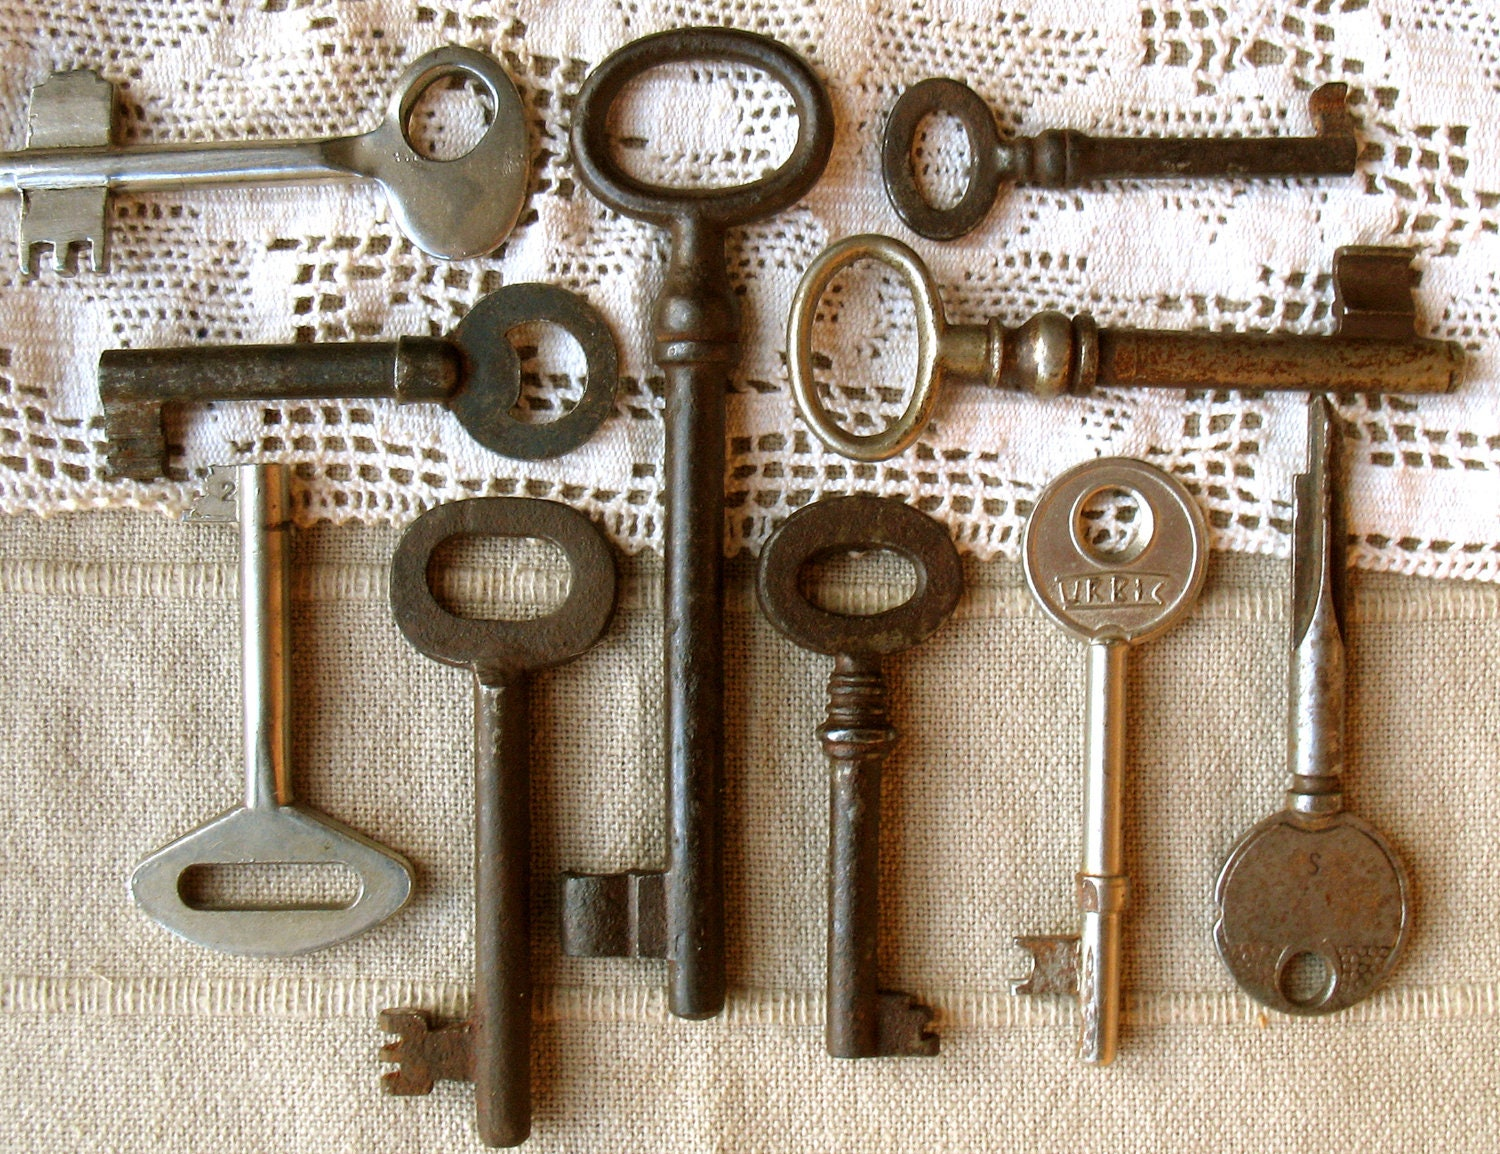 Sale Old Keys Genuine Vintage Keys 10 Antique Skeleton